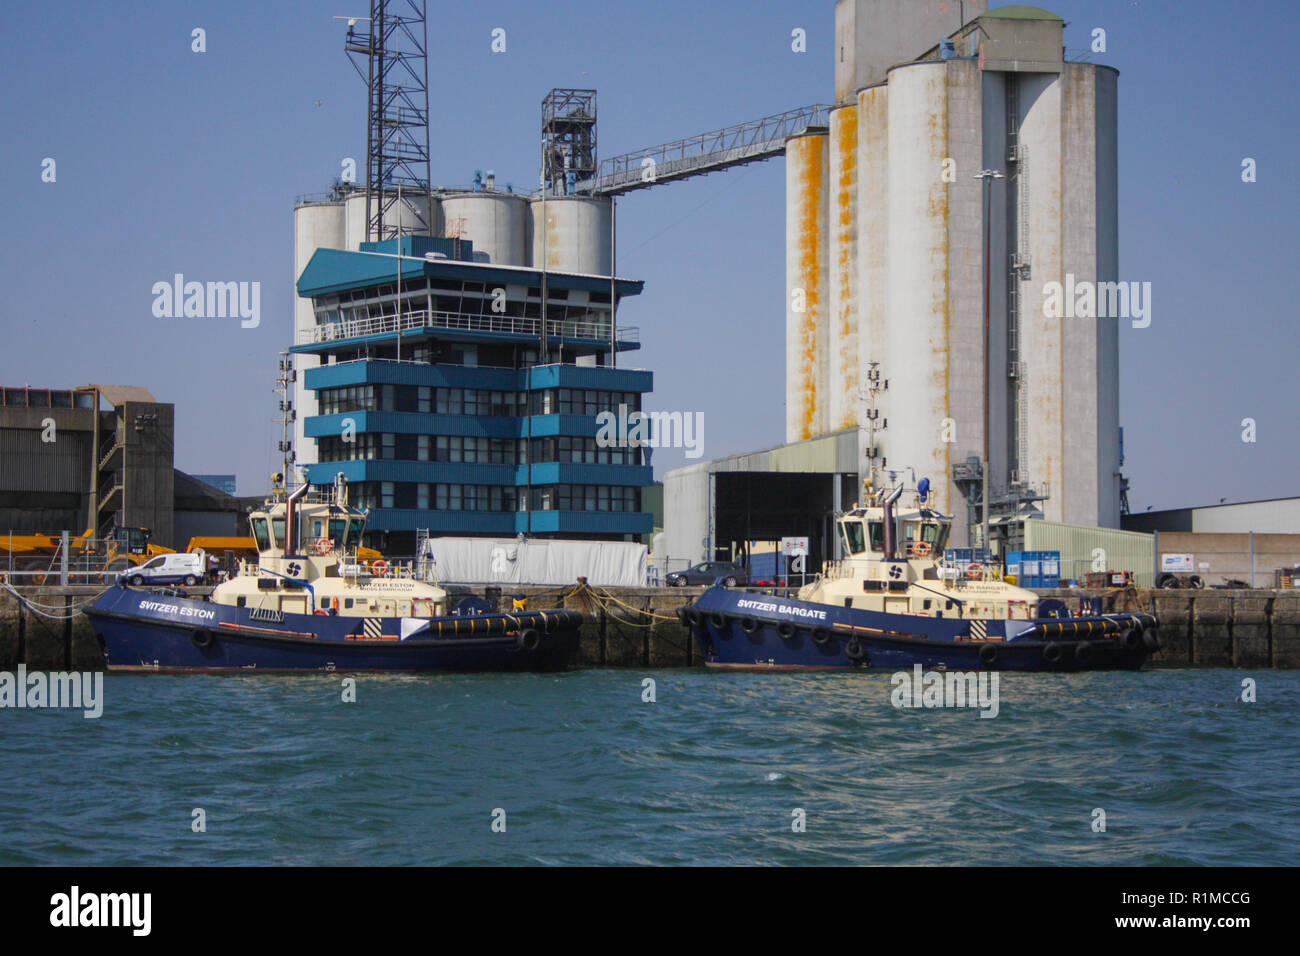 Passing the Port Control Centre on the little Hythe Ferry into Southampton - Stock Image